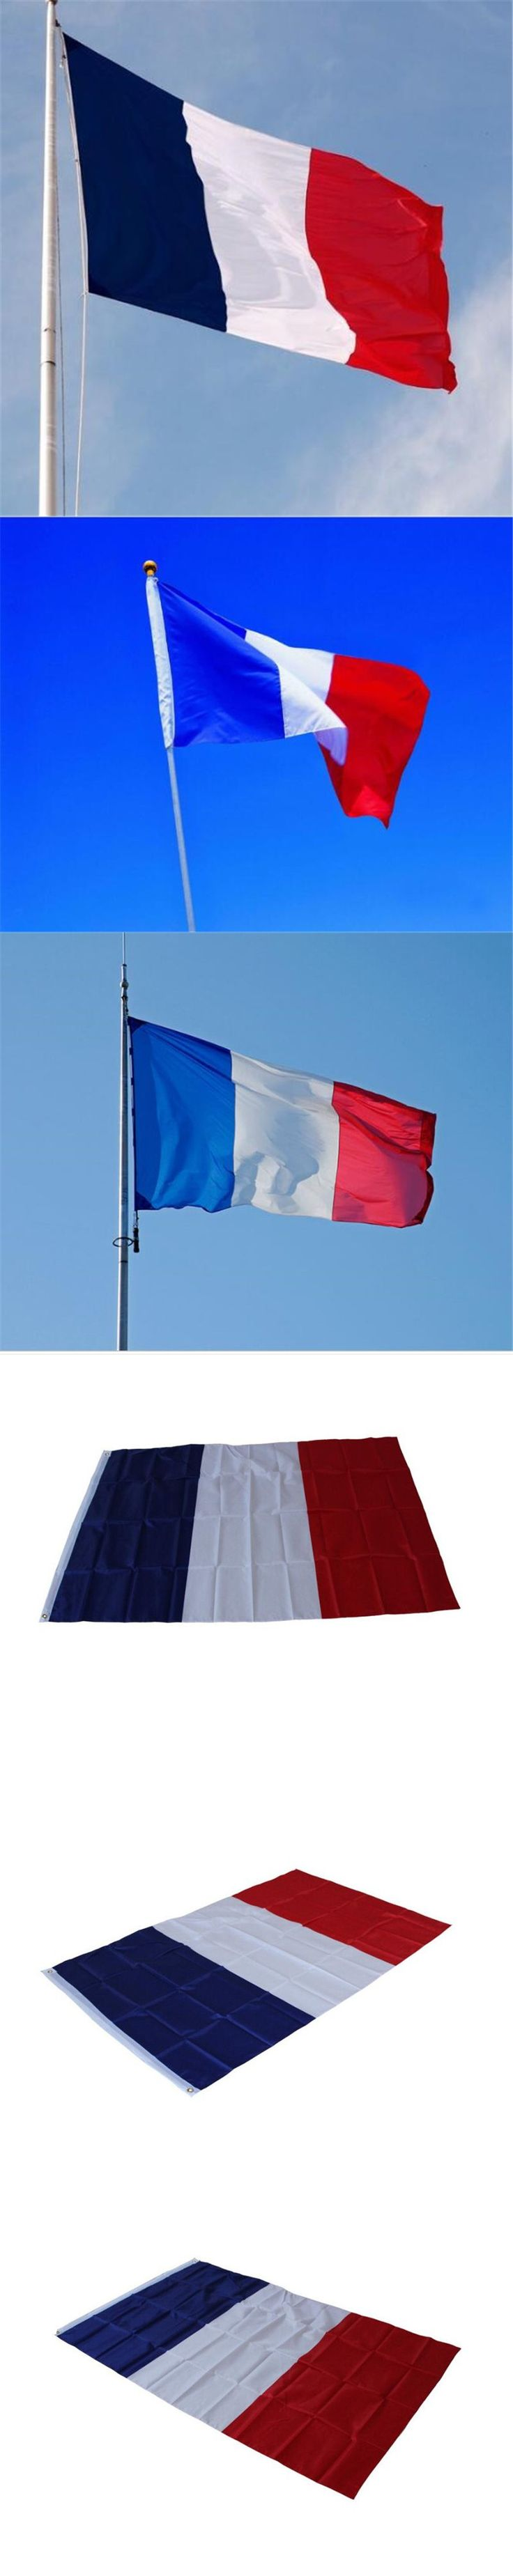 New Feet Large Polyester French Flag the France National Flags Home Decor $2.99